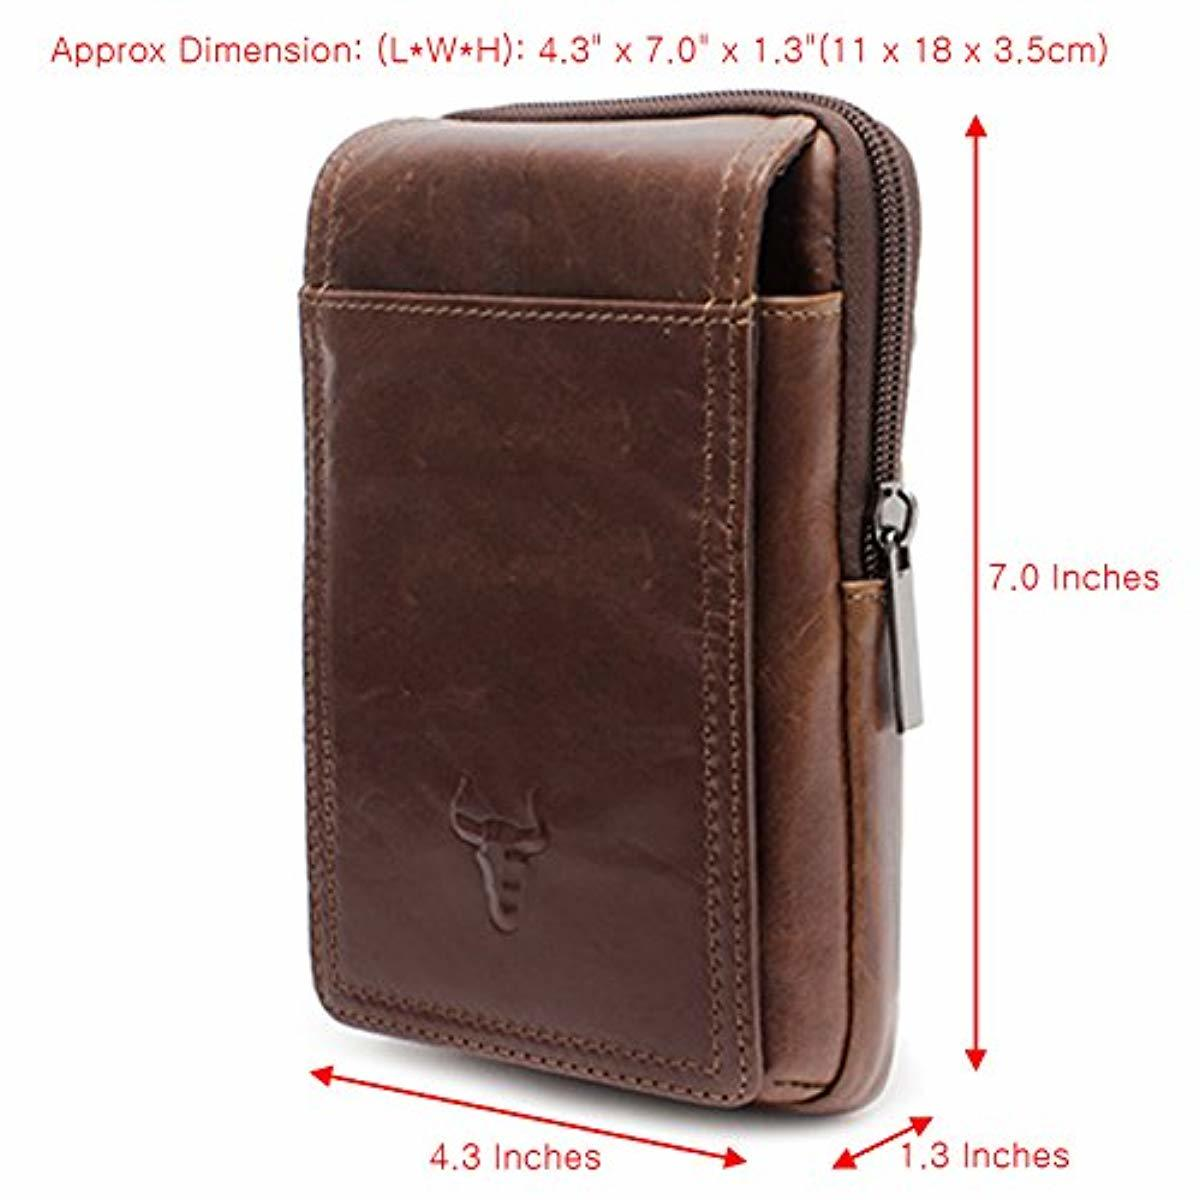 Waist Pack Travel Leather Messenger Bag Cellphone Phone Cases Pouch Holsters 92701 - ENCACC